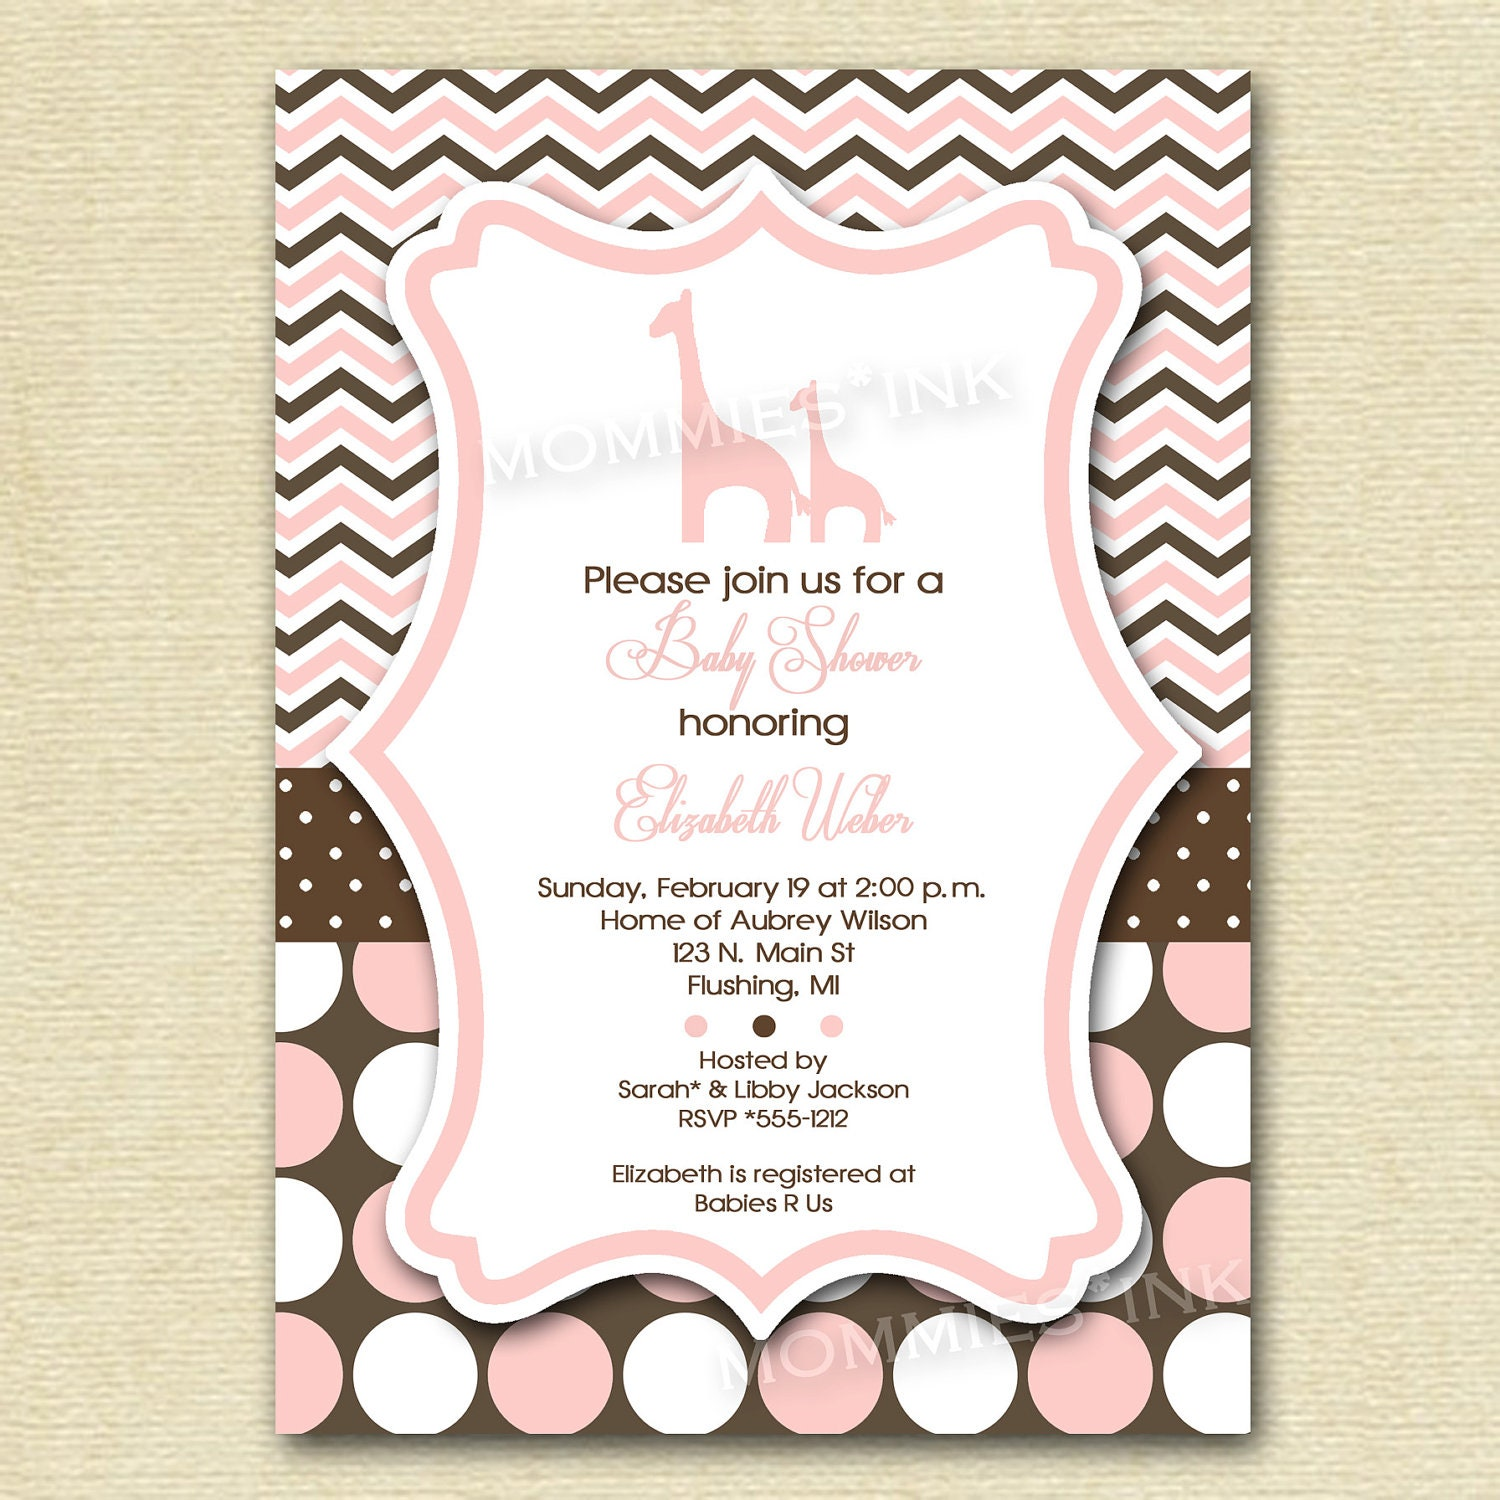 baby shower invitation giraffe baby shower by mommiesink on etsy